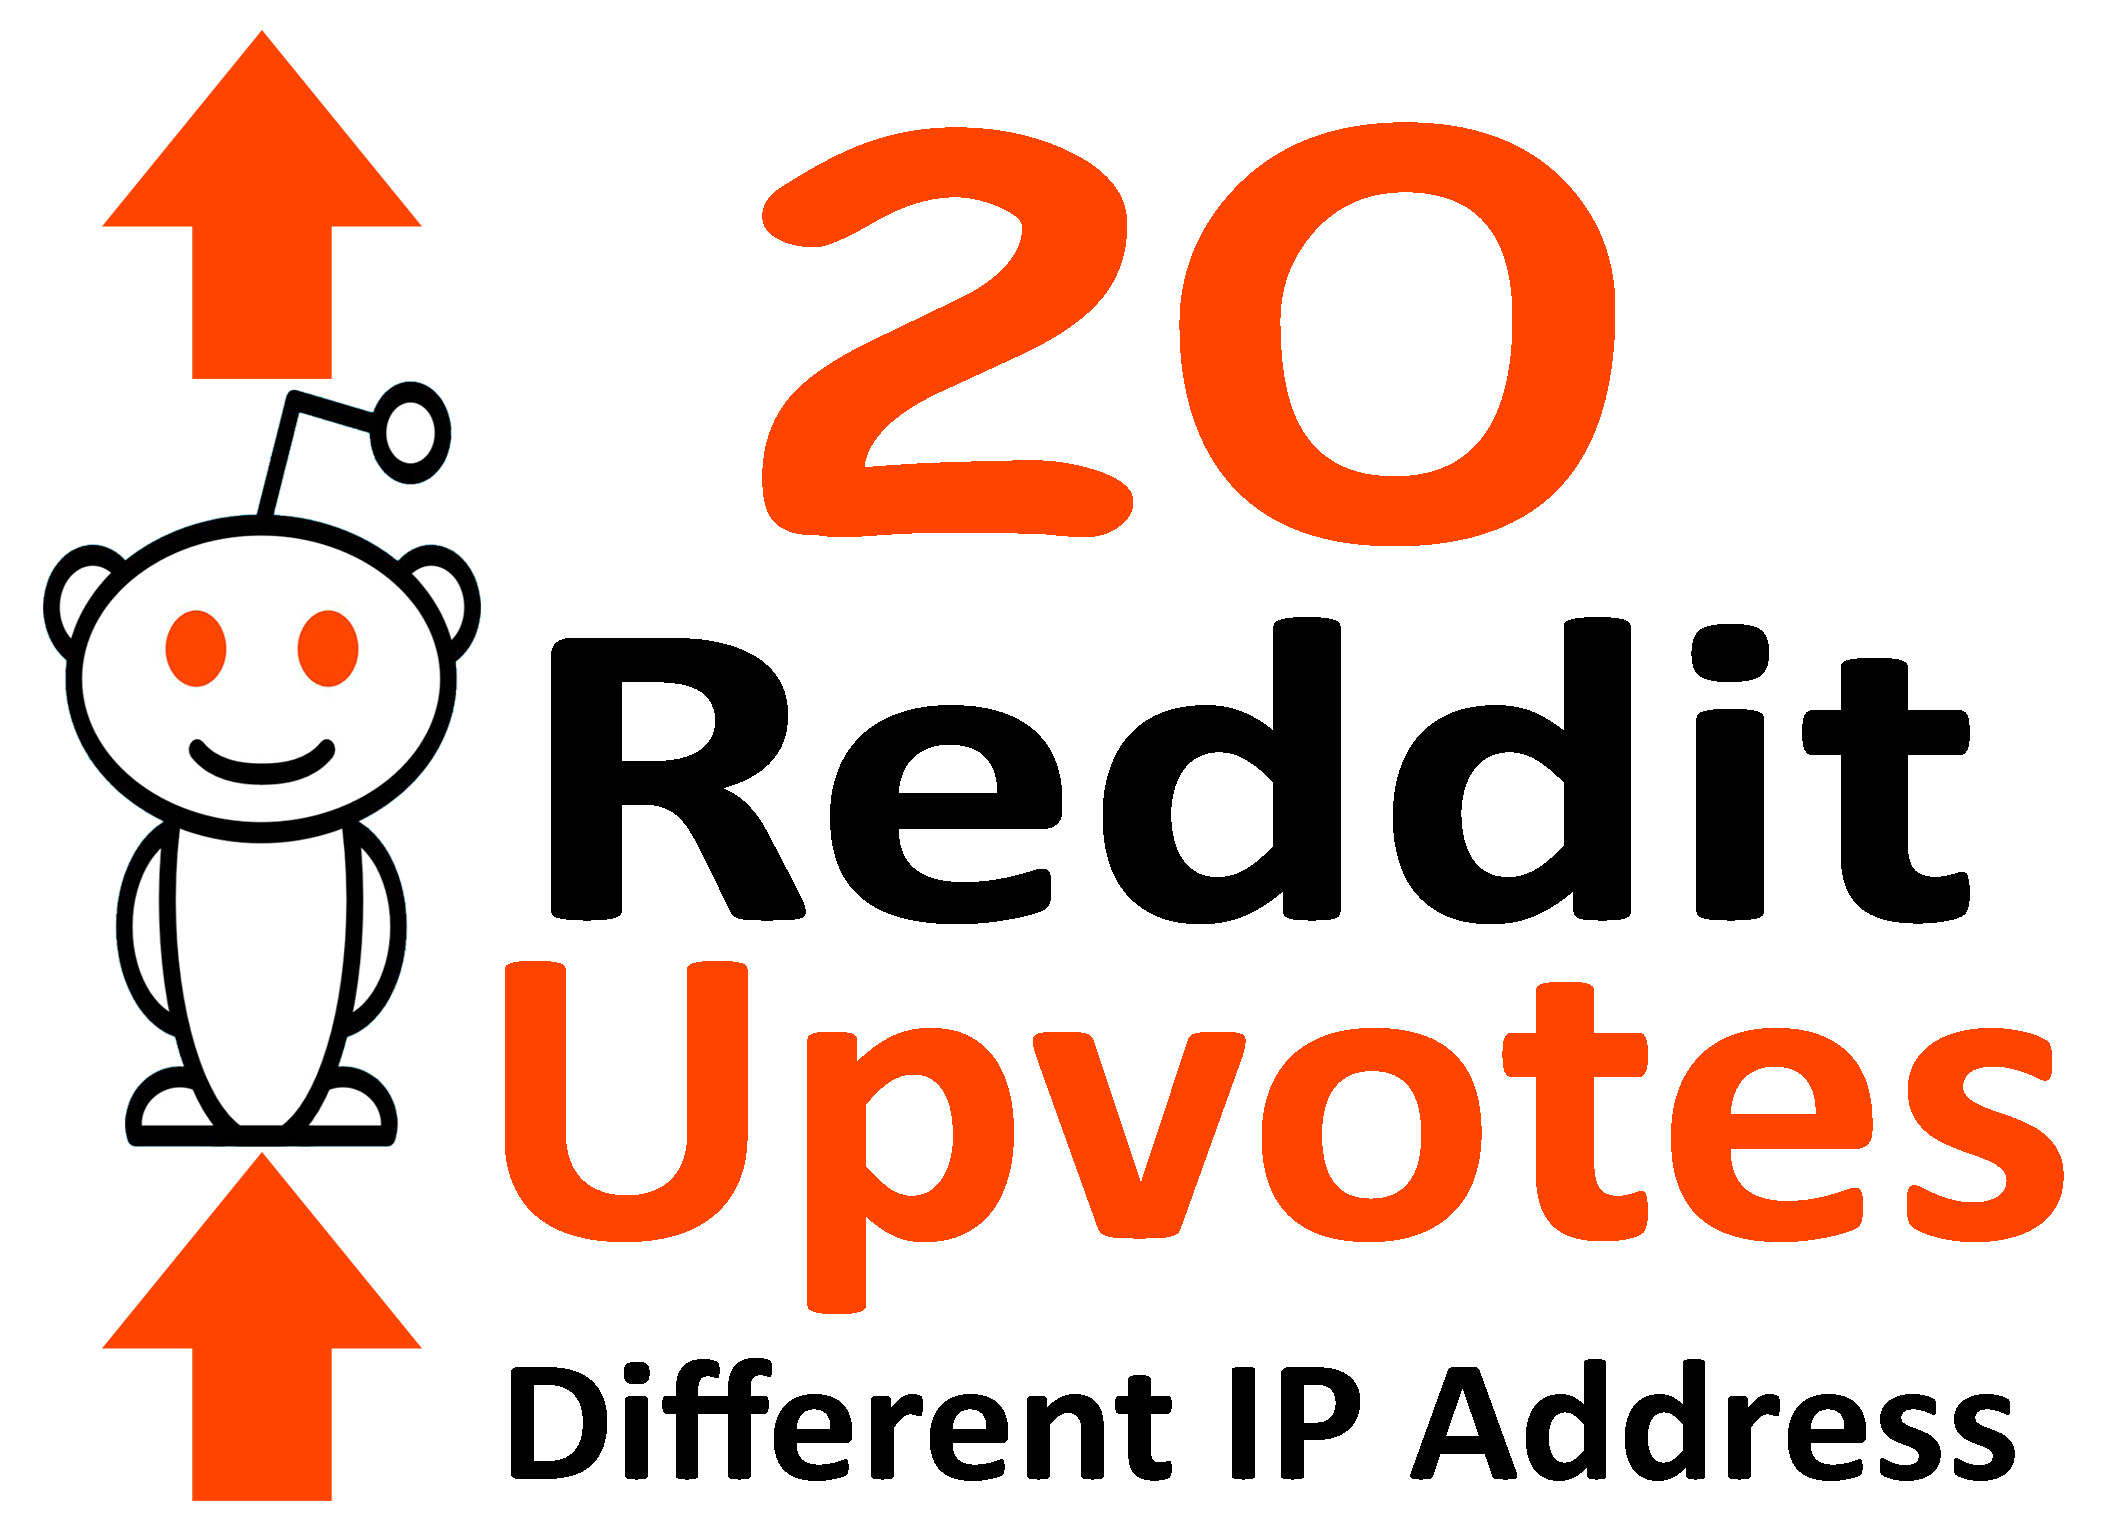 Give 20 Real Reddit Upvotes Using Different IP Address